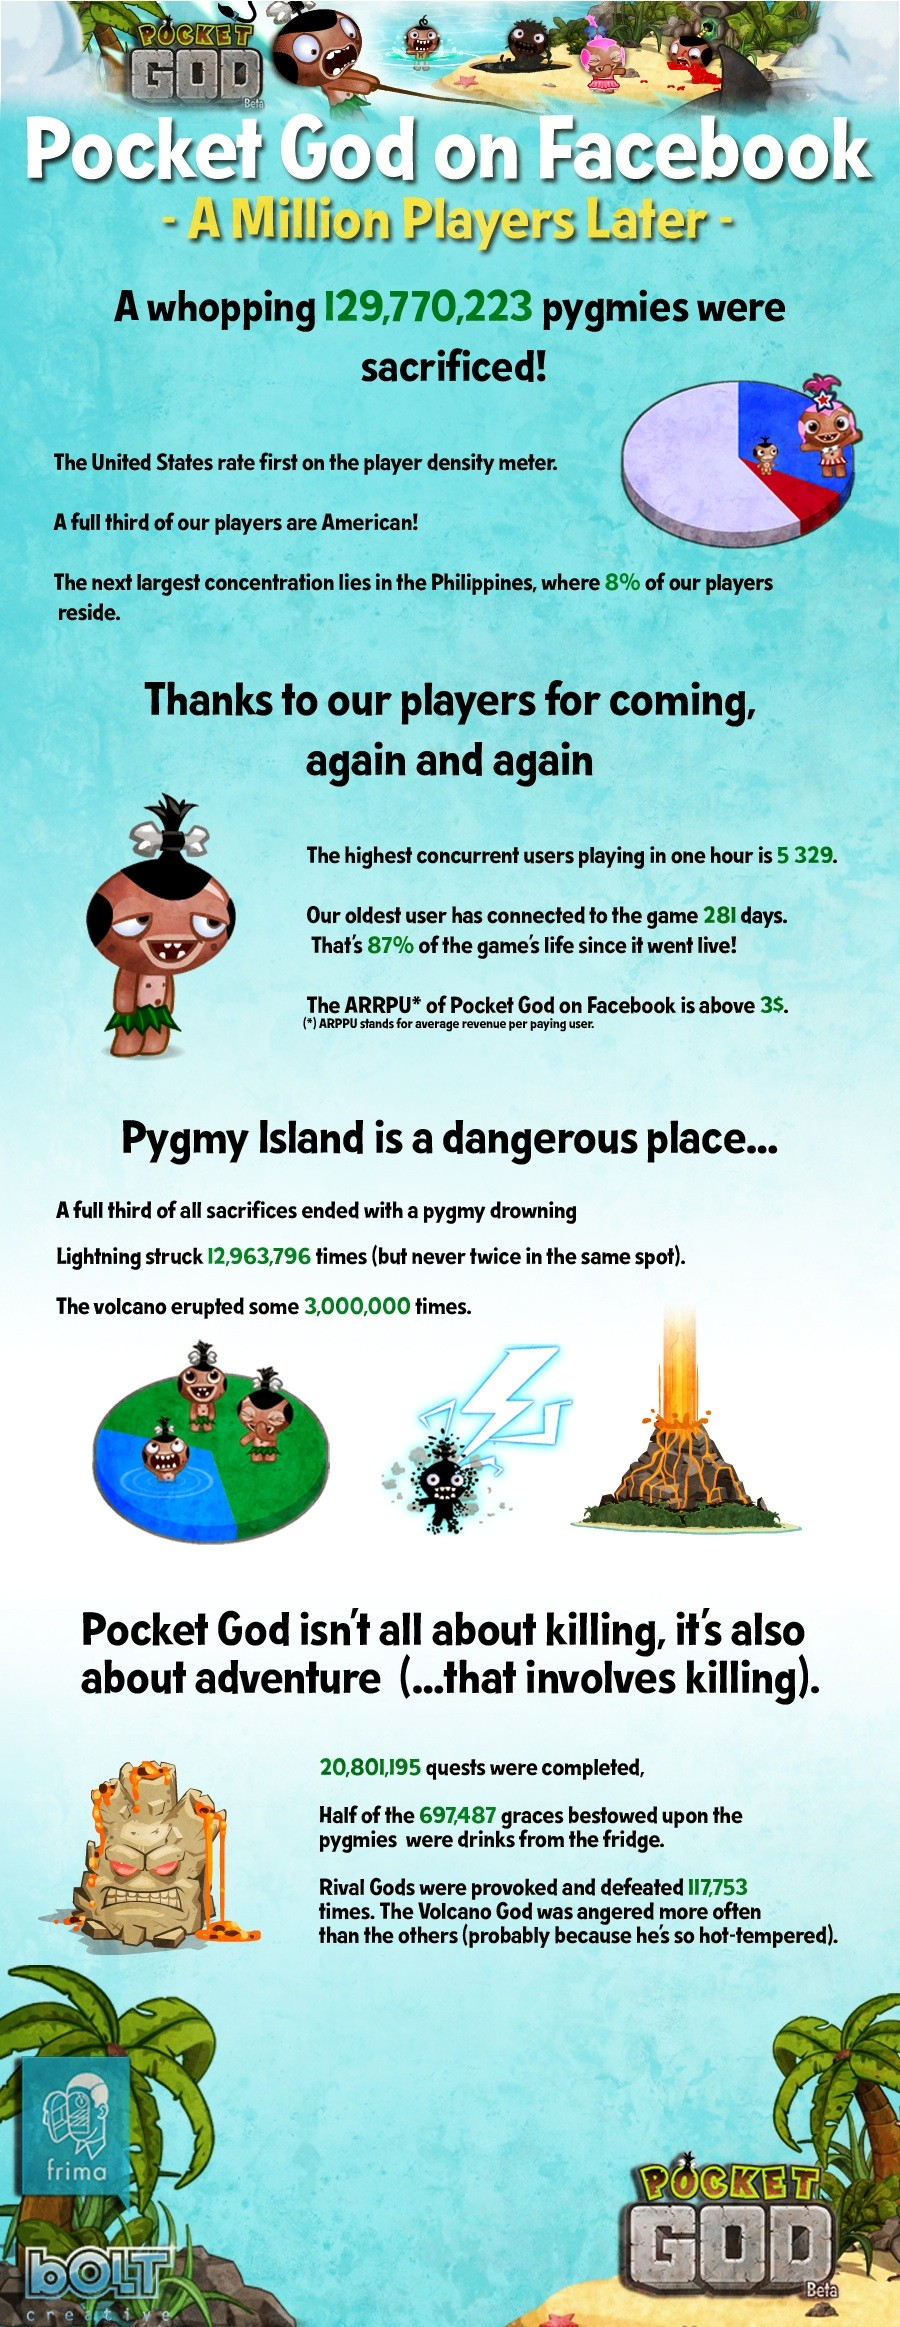 Pocket God Facebook infographic